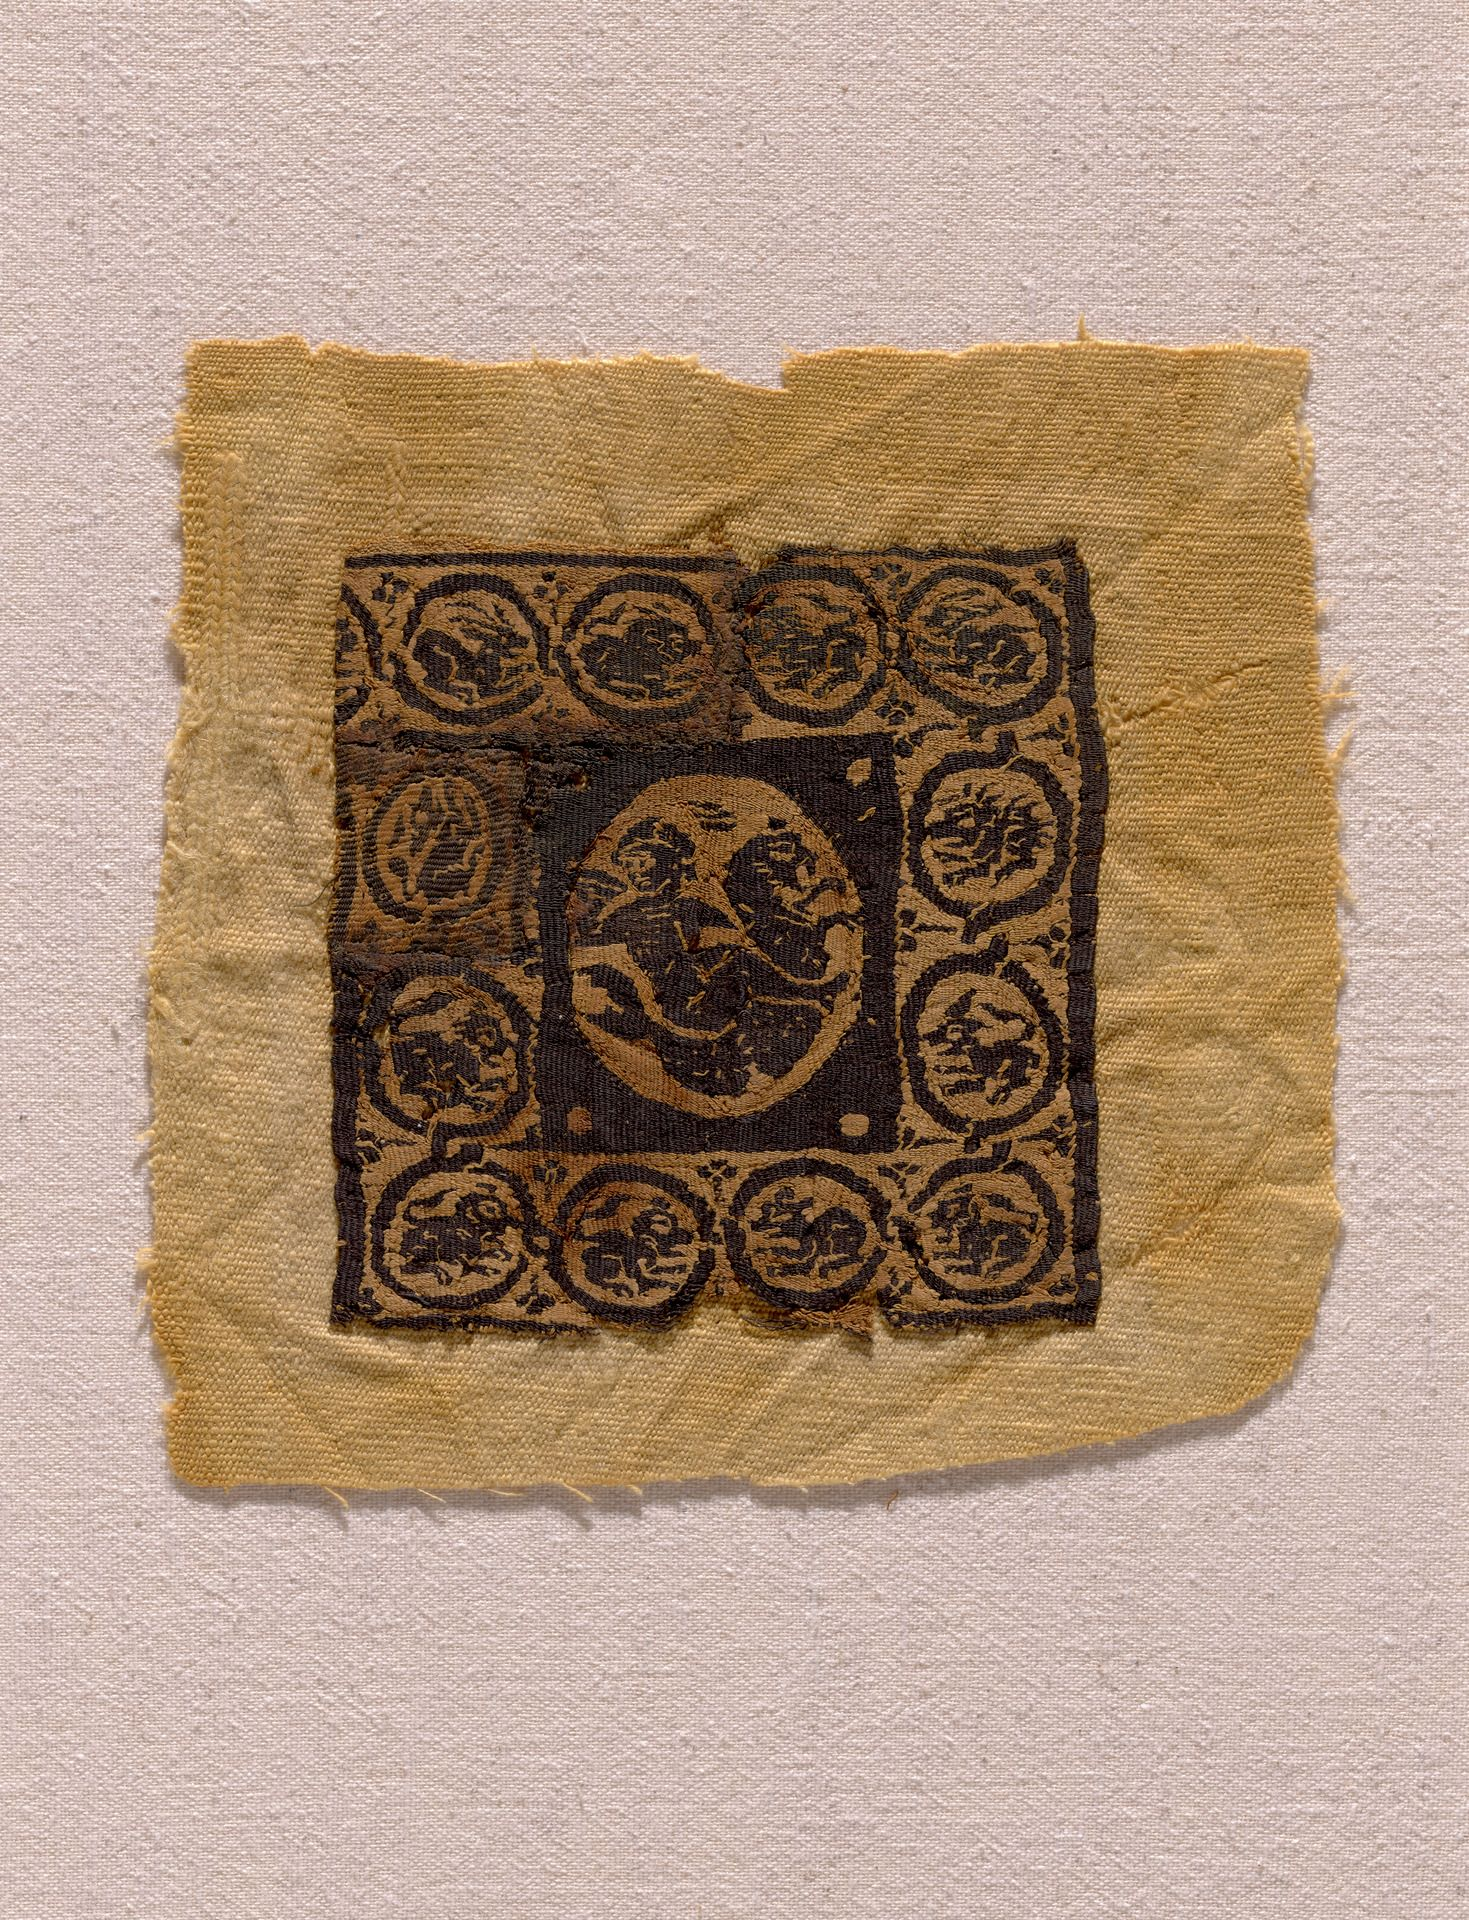 Coptic textile, Egyptian, ca. 4th Century A.D. Unknown fabric, 20.2 x 21.5 cm (7 15/16 x 8 7/16 in.). Gift of the Olsen Foundation. Photo credit: Yale University Art Gallery